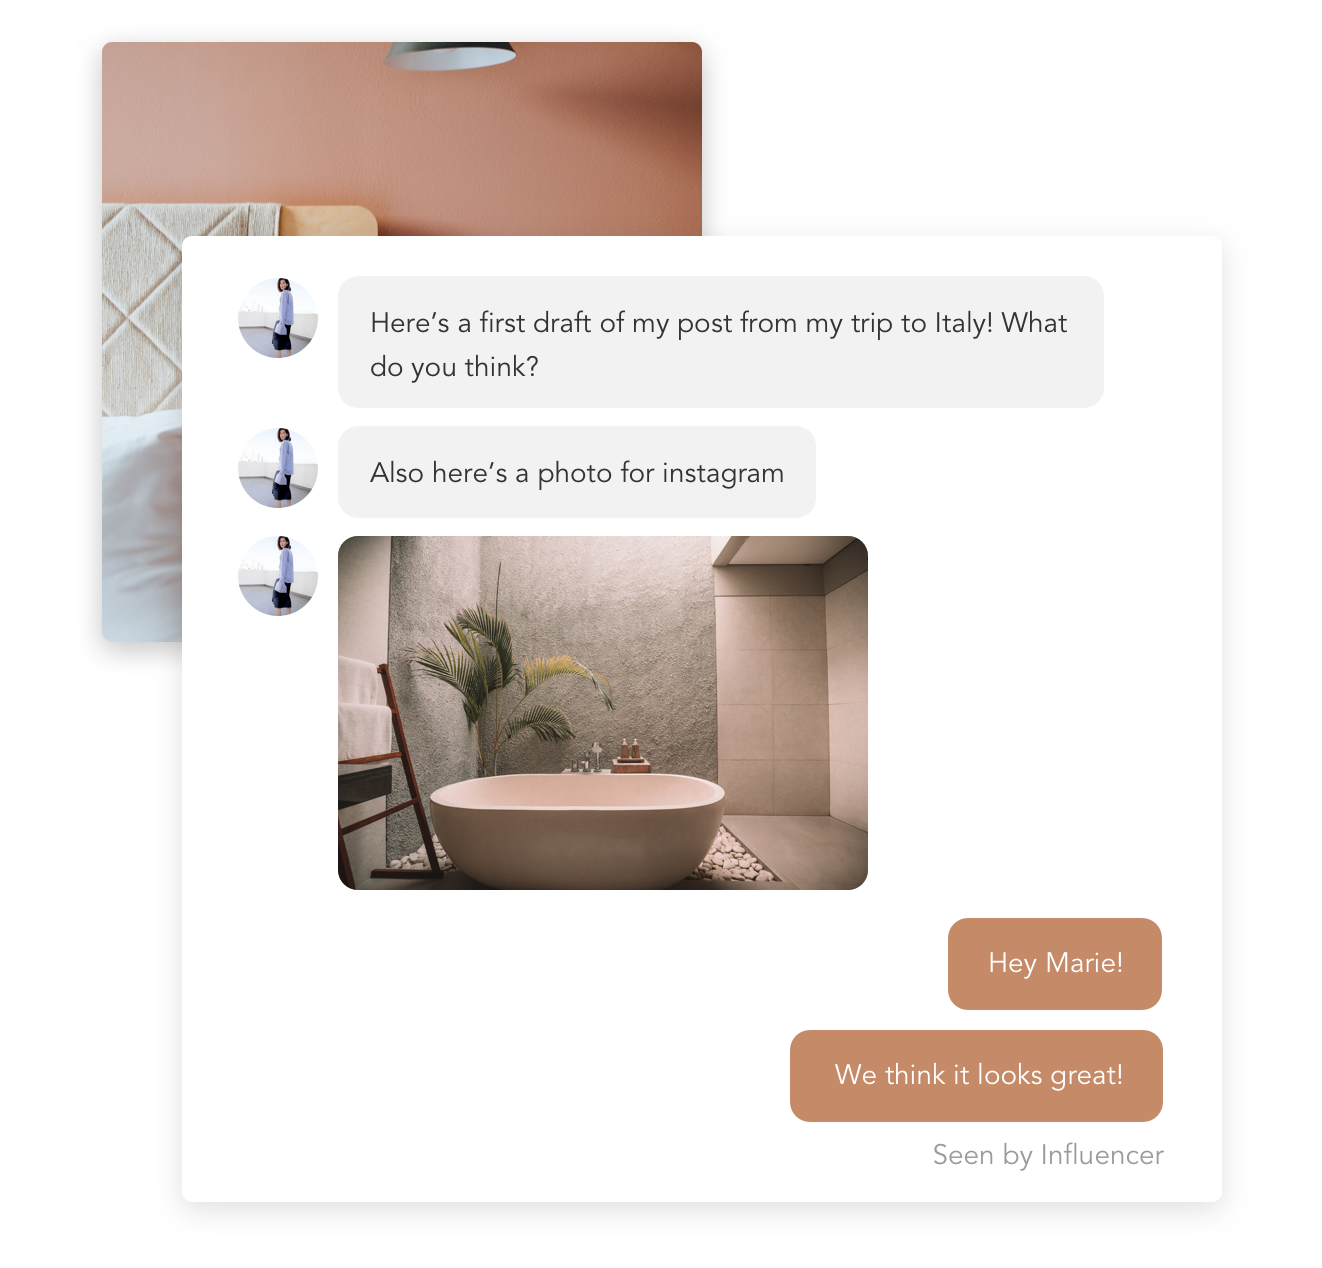 Multiple Campaigns, One Inbox - Easily community with your influencers with our universal messaging feature. Interchange all types of documents - images, videos, PDFs, the works.